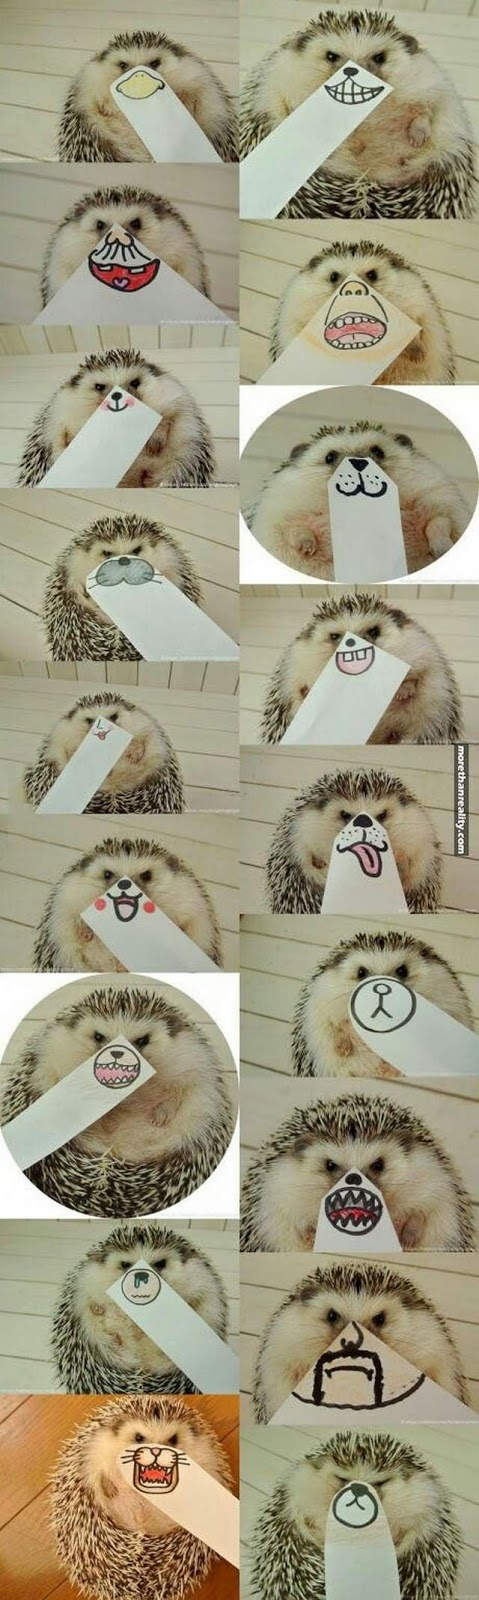 Funny animals of the week - 2 June 2017, funny animal images, best cute animal picture